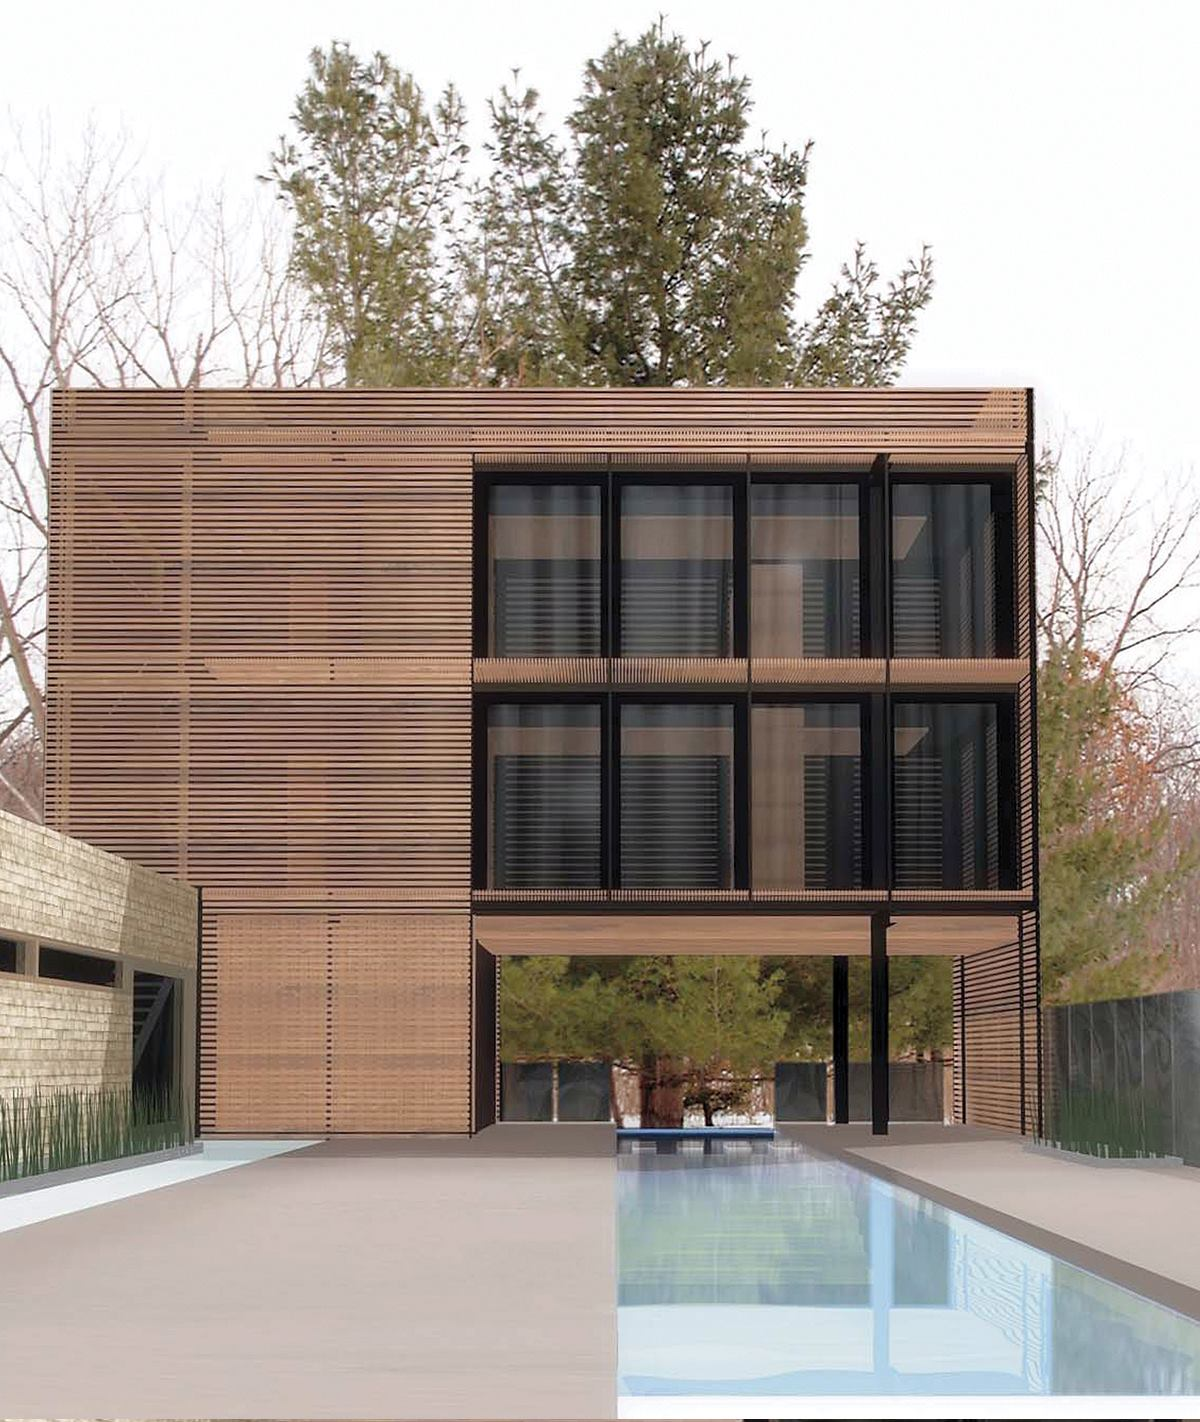 Moen Pool And Guesthouse Des Moines Iowa Residential Architect Architects Award Winners Des Moines West Des Moines Ia Kirk Blunck Herbert Lewis